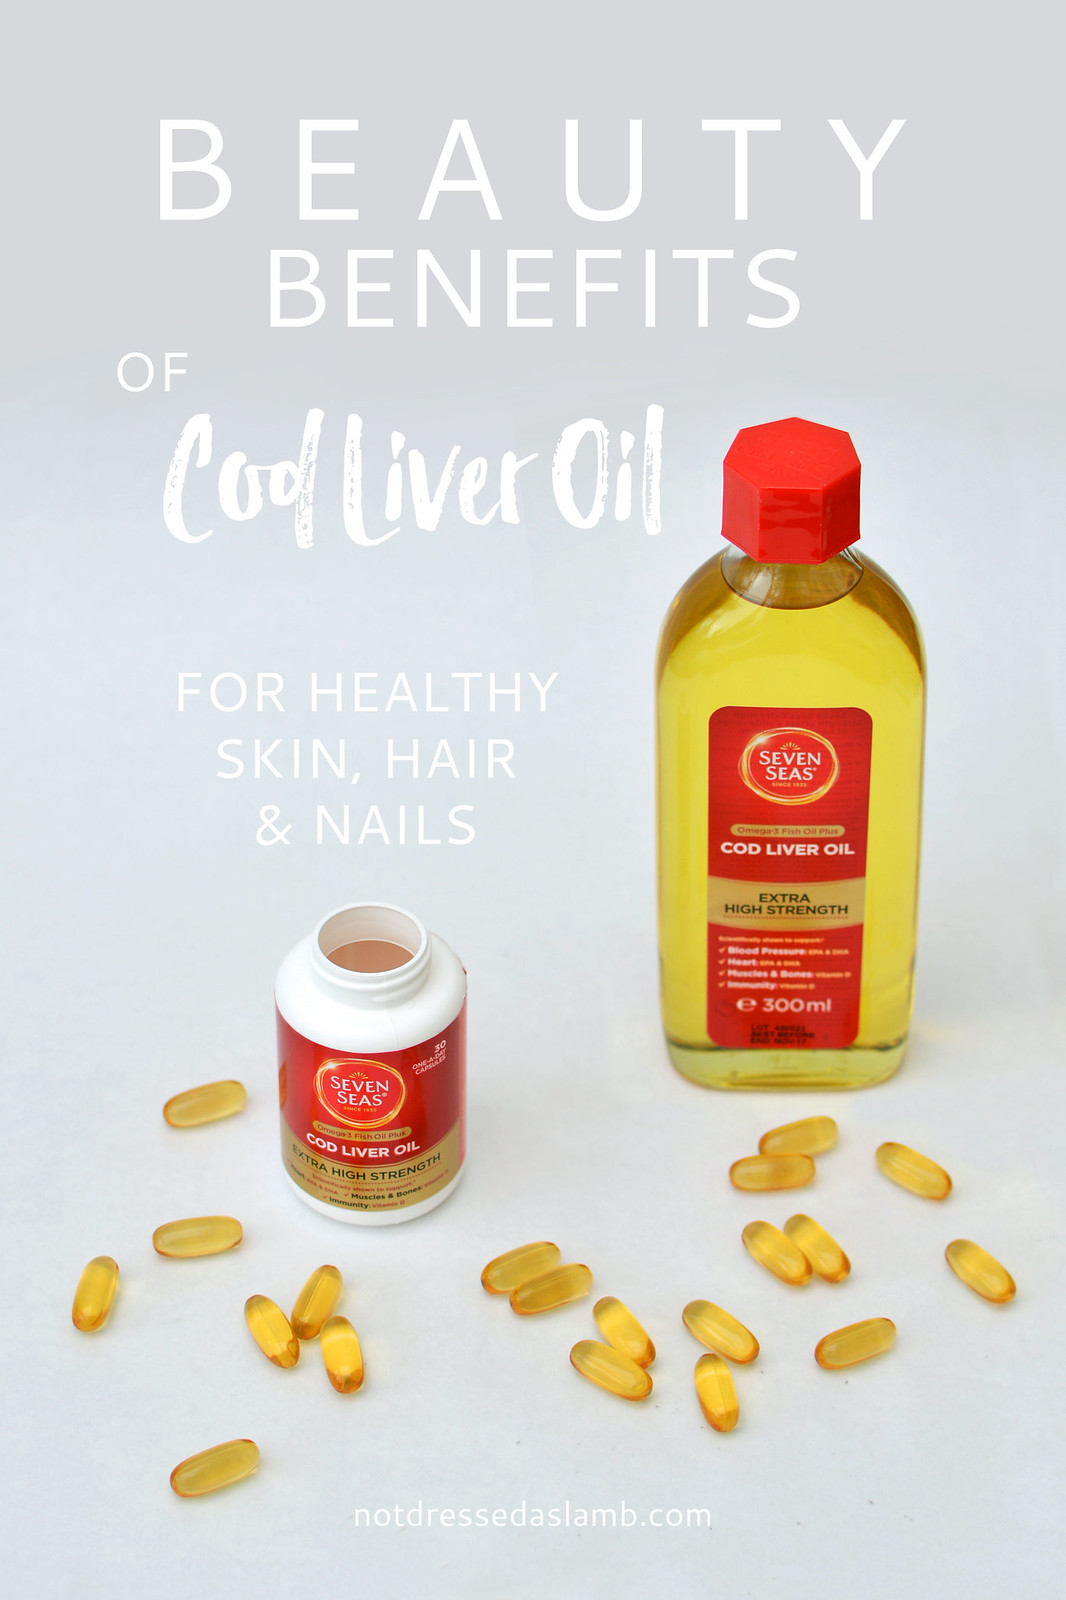 The beauty benefits of cod liver oil for healthy skin, hair and nails | Not Dressed As Lamb